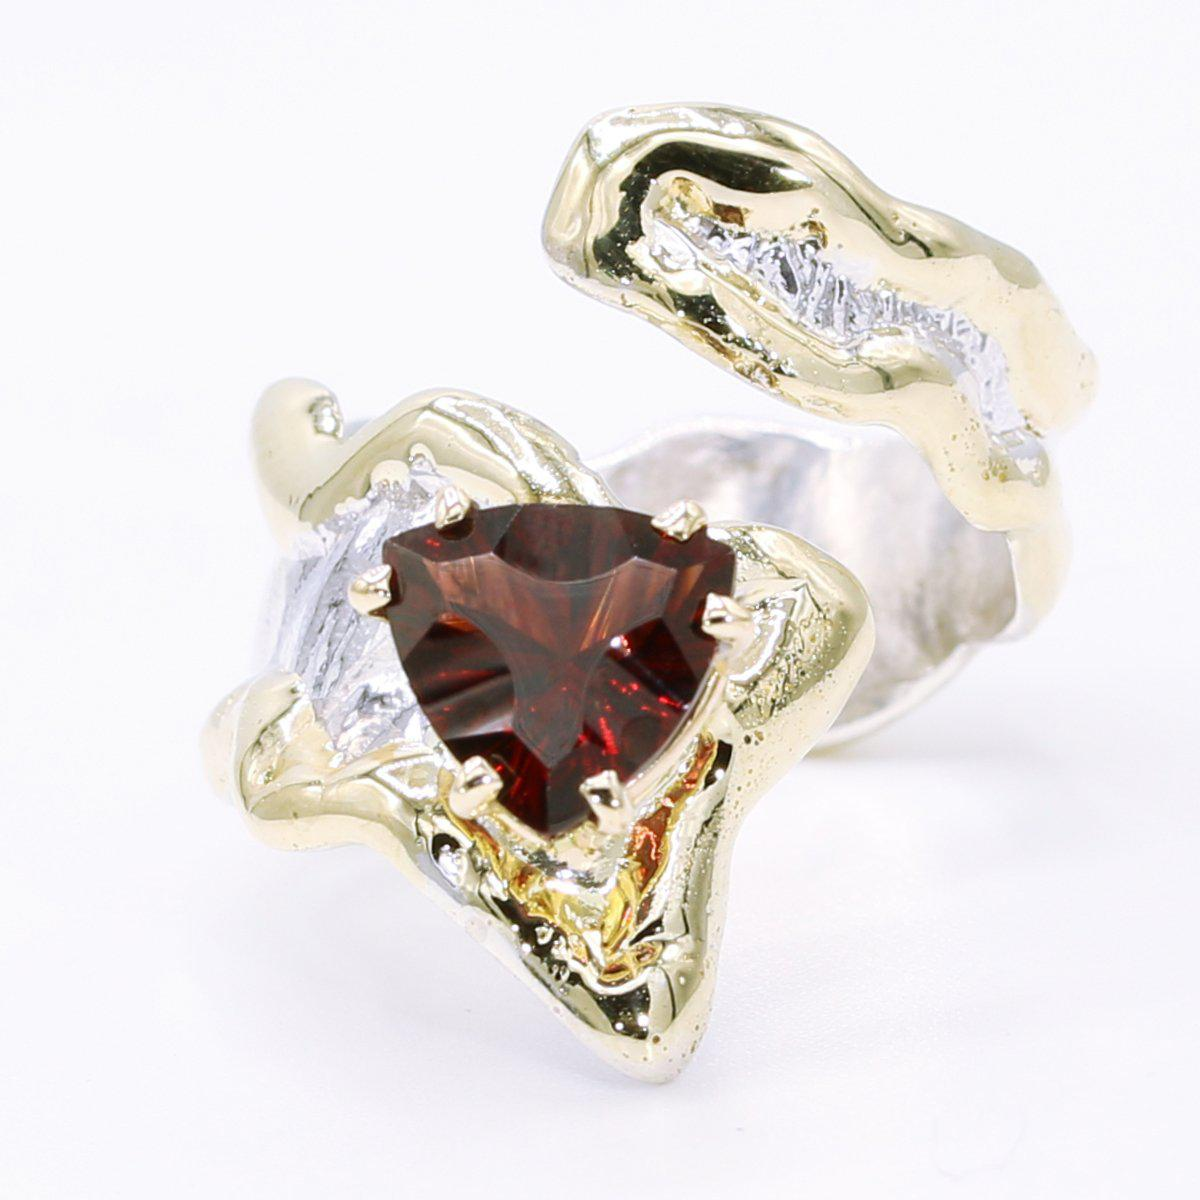 14K Gold & Crystalline Silver Garnet Ring - 34510-Fusion Designs-Renee Taylor Gallery